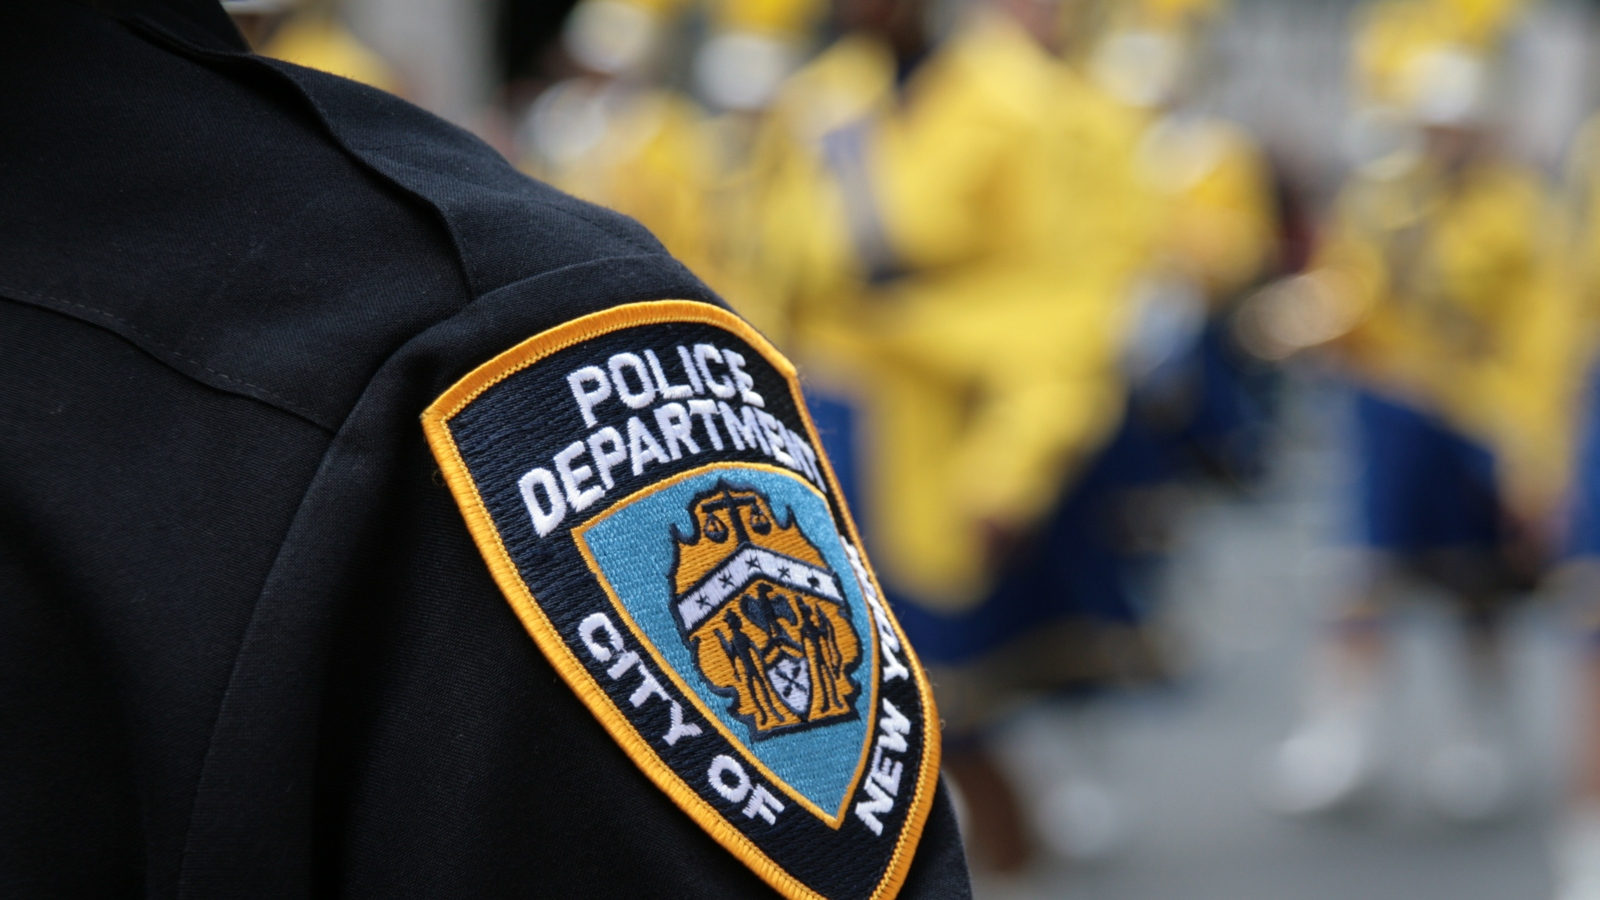 Off-duty NYPD employee arrested following domestic dispute in his Queens home